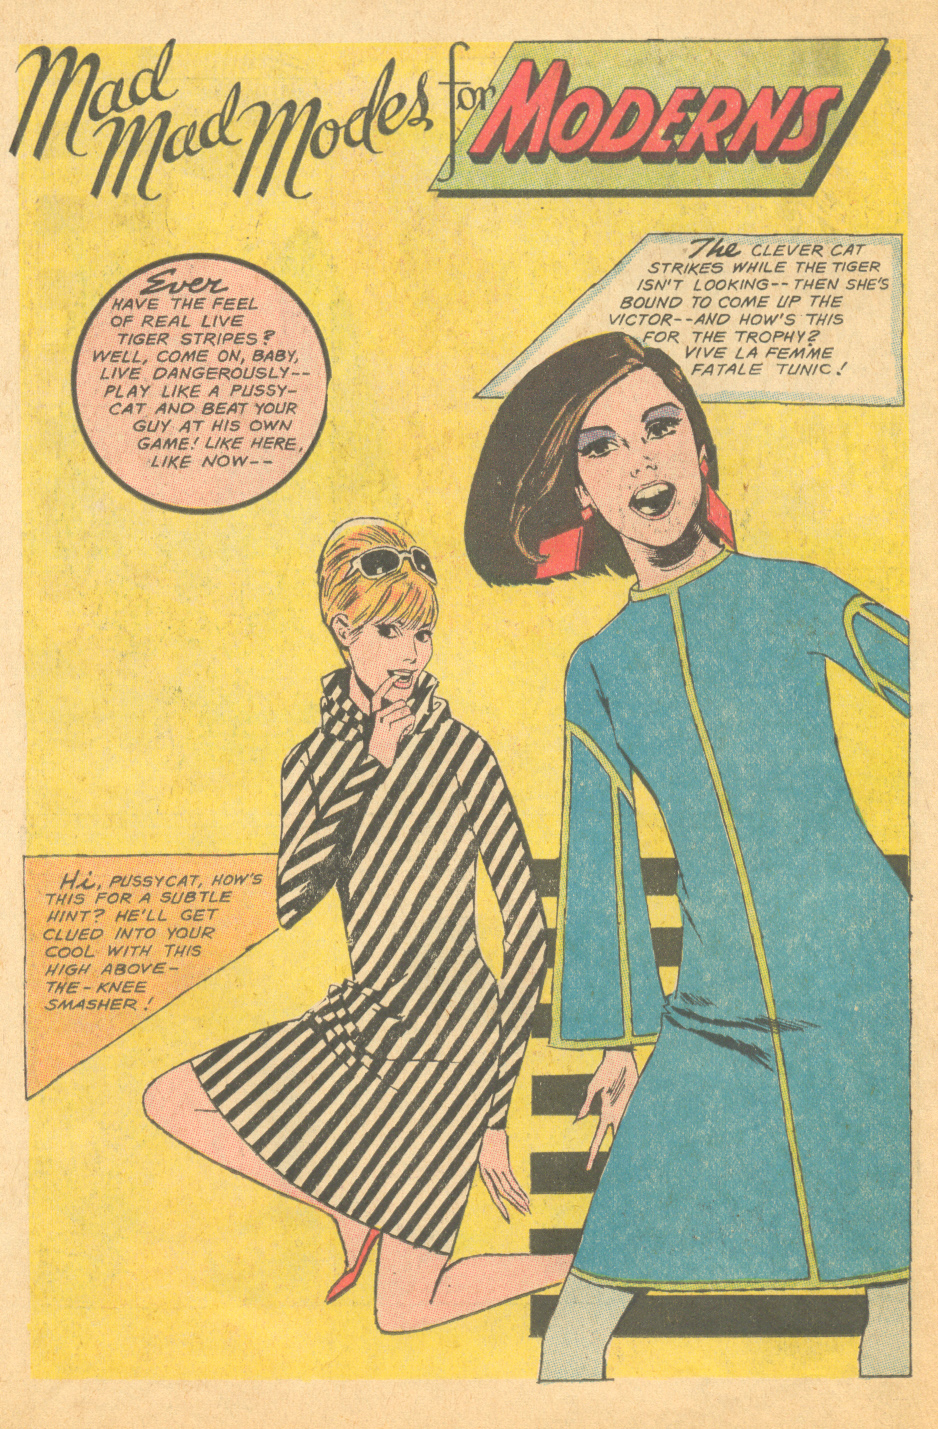 """""""Mad Mad Modes for Moderns"""" Illustrated by Tony Abruzzo Falling in Love #90 (April 1967)"""